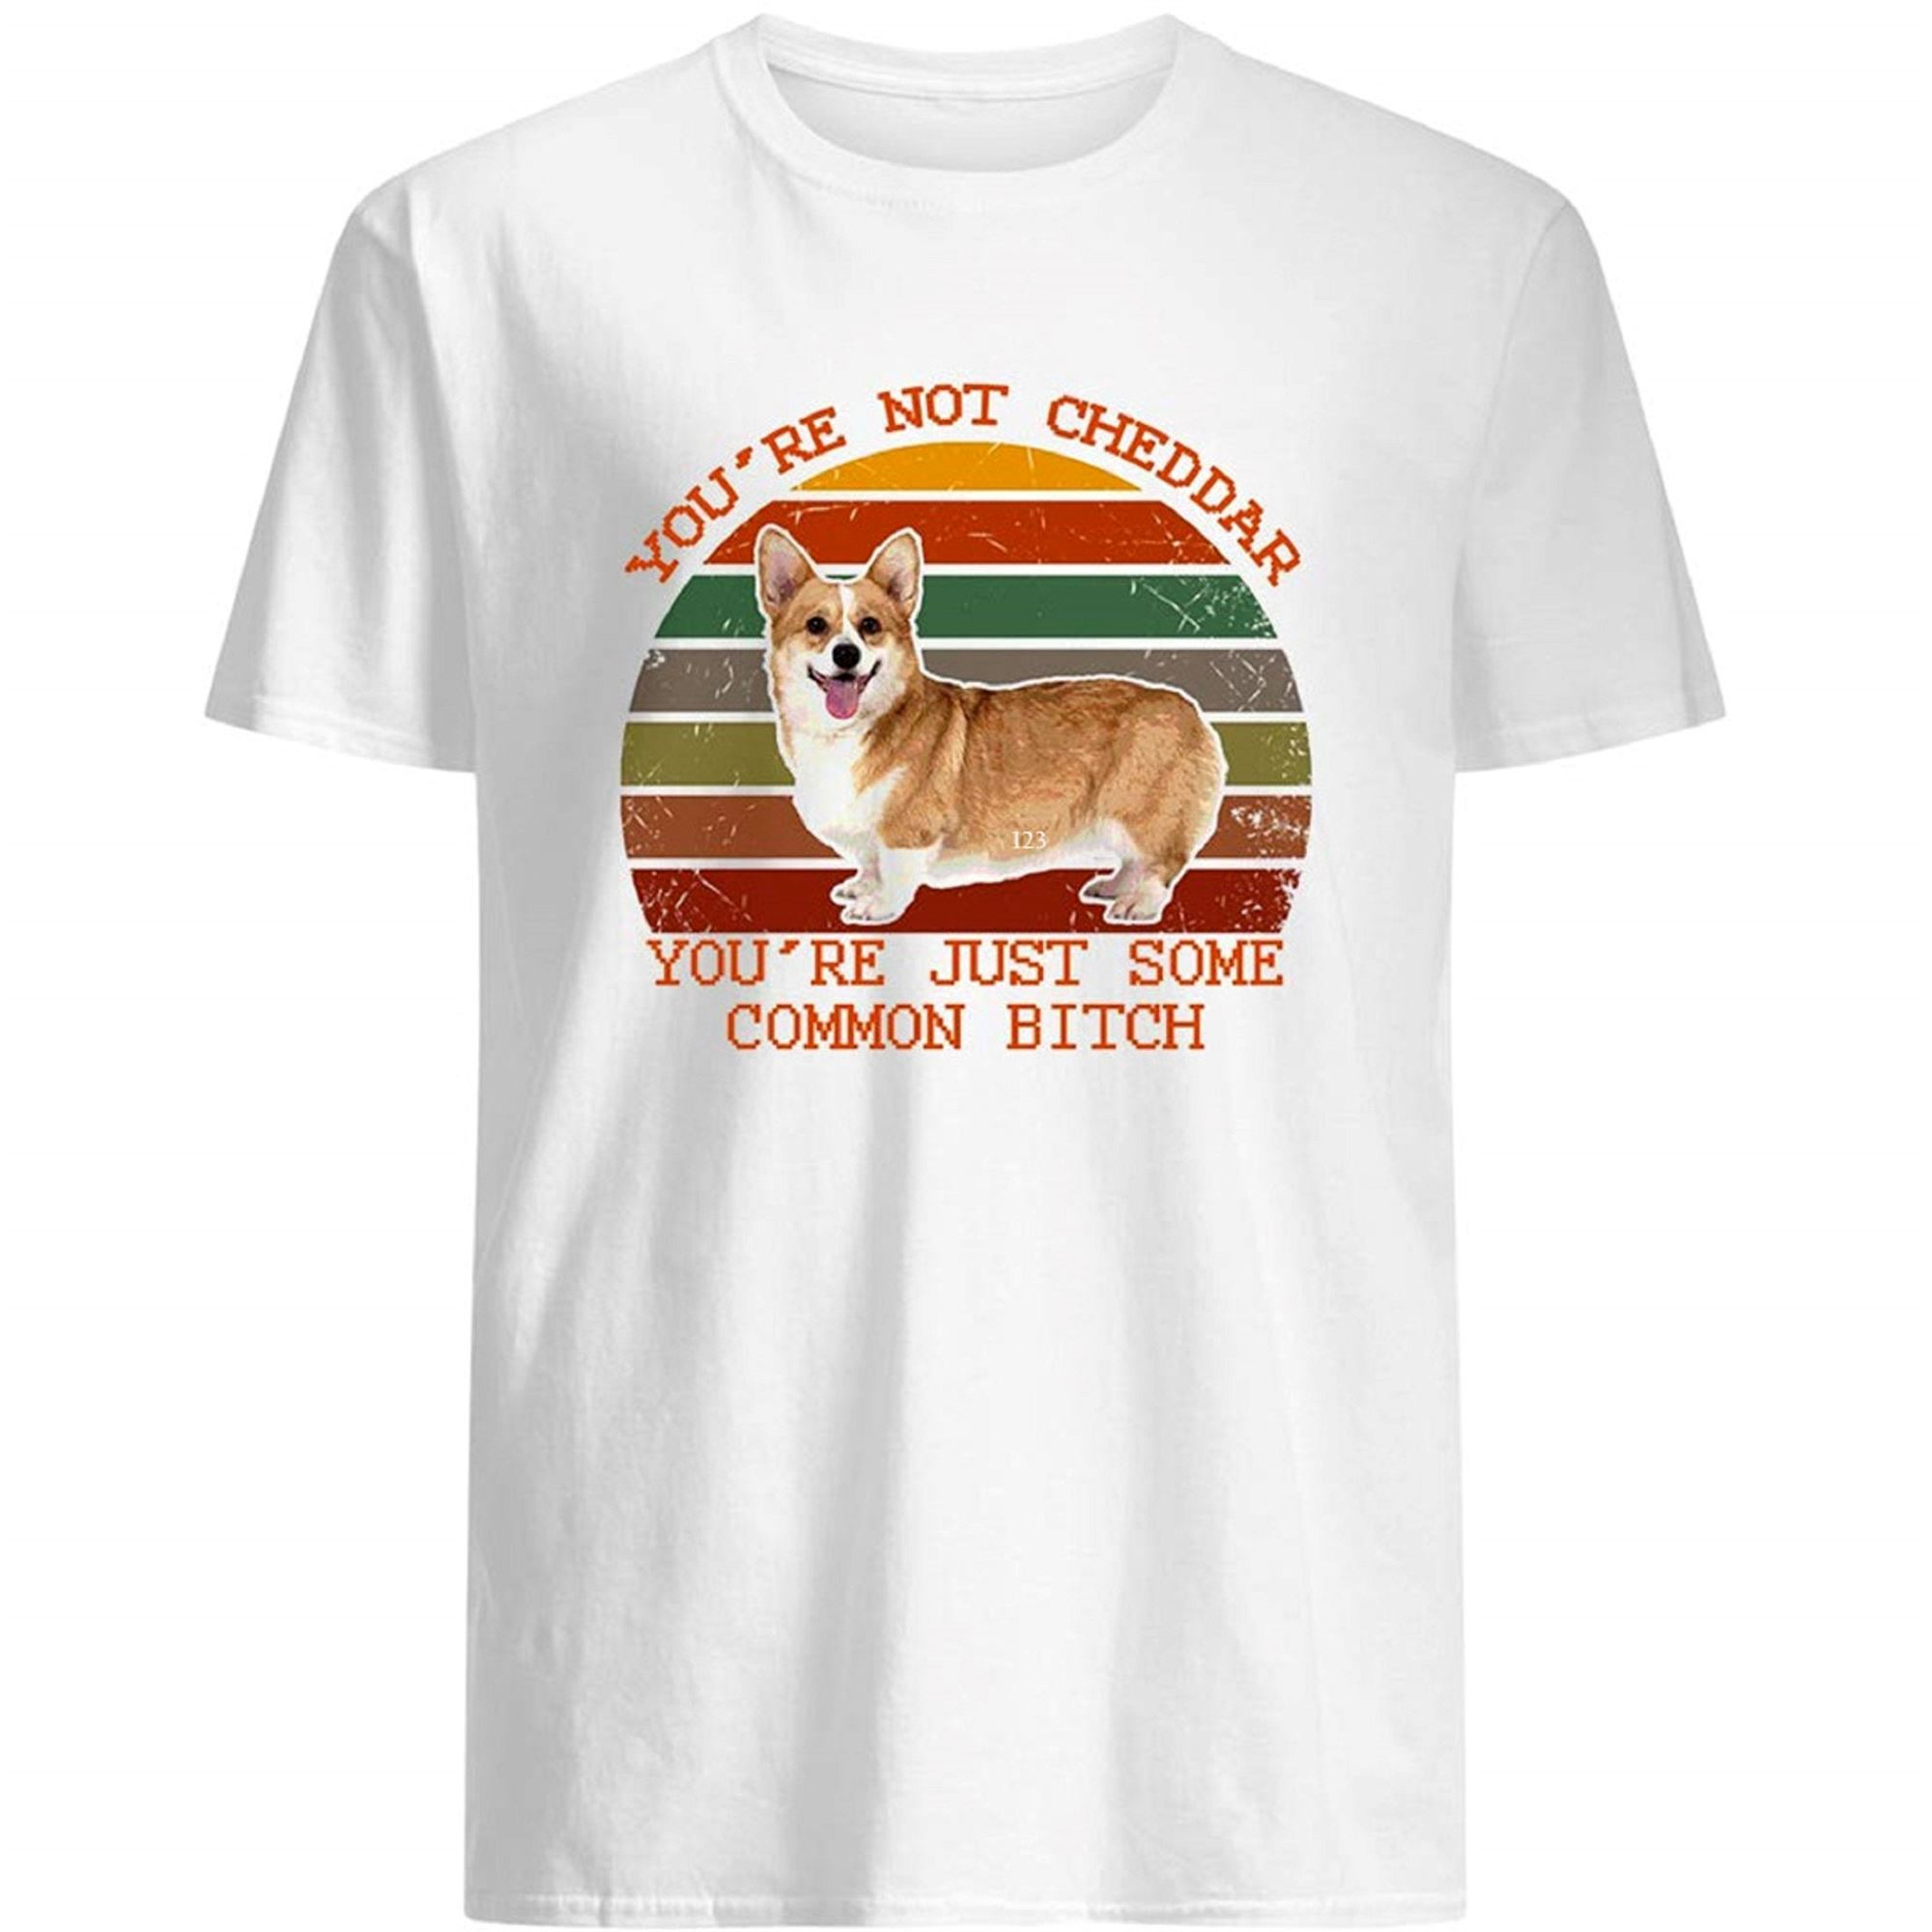 Corgi Cute Vintage Youre Not Cheddar Youre Just Some Common Gift Graphic Tee Gift For Female Women Tee T-shirt